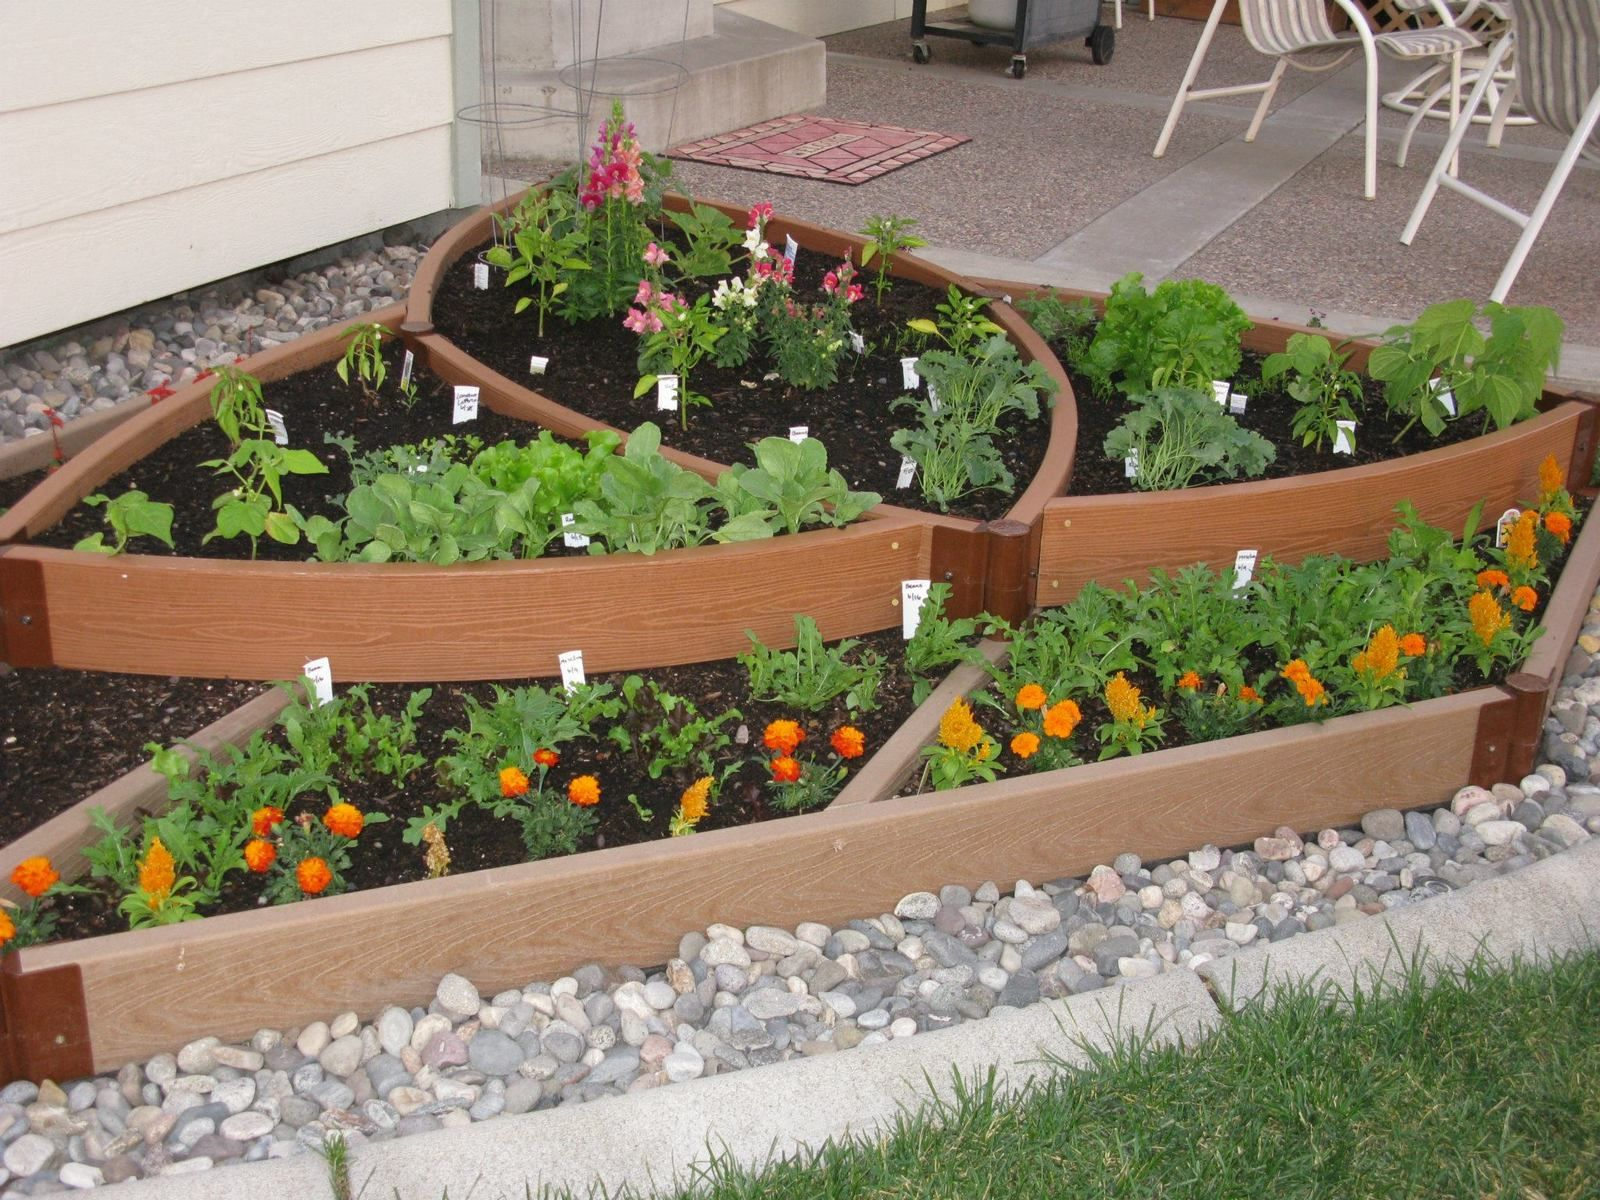 Raised garden raised garden bed kits for sale and buy for Raised bed garden designs plans